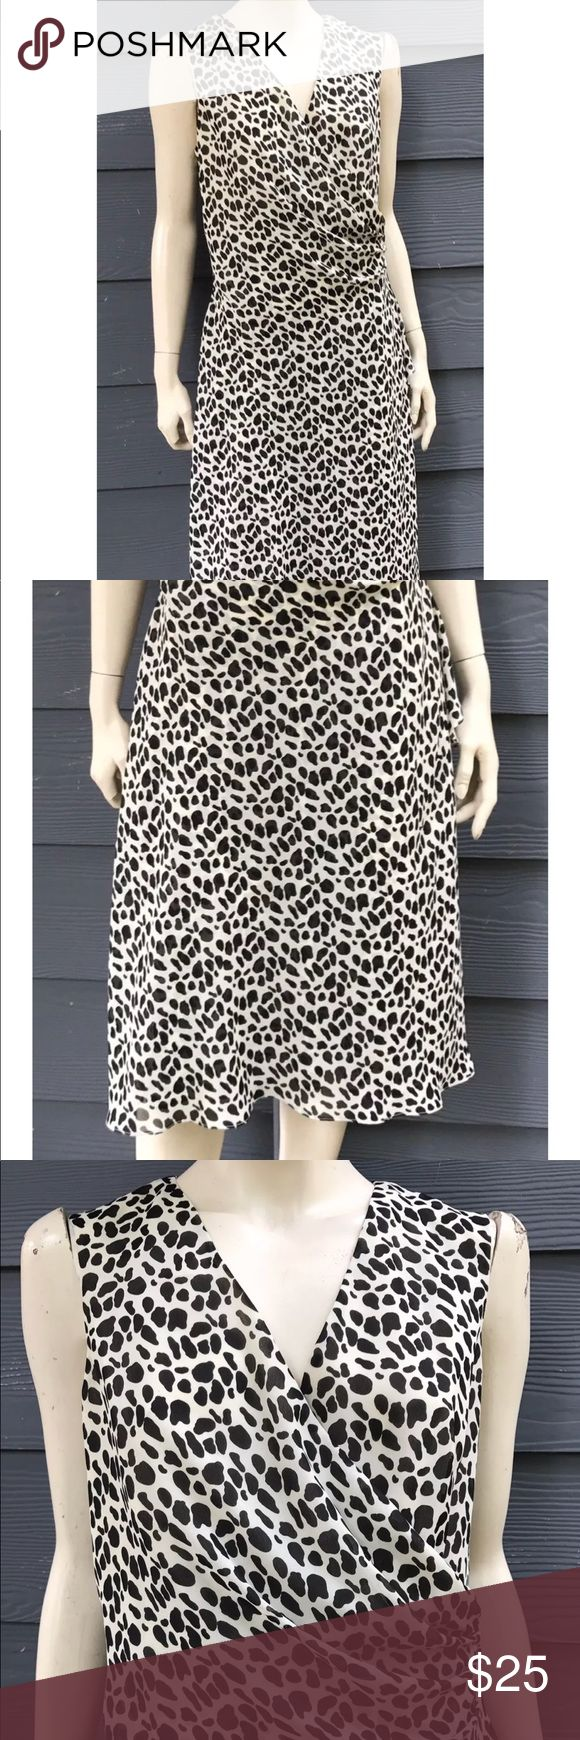 """DONNA RICCO Women Dress Black White Top Wrap Sz 14 DONNA RICCO Women's Dress Black White Animal Print Top Wrap Sleeveless Ruching Side Sz 14  Measurements laying flat approximately: Armpit to armpit 21 1/2"""", waist 18"""", hips 22"""", length 42"""".  THIS GORGEOUS DRESS HAS BEEN A DISPLAY AND TRIED ON AND OVERALL IS IN GREAT CONDITION!  NOTE:  PLEASE REVIEW MEASUREMENTS CAREFULLY BEFORE PURCHASING THIS ITEM SINCE SIZES SOME TIMES ARE DIFFERENT FROM BRAND TO BRAND. Donna Ricco Dresses Midi"""